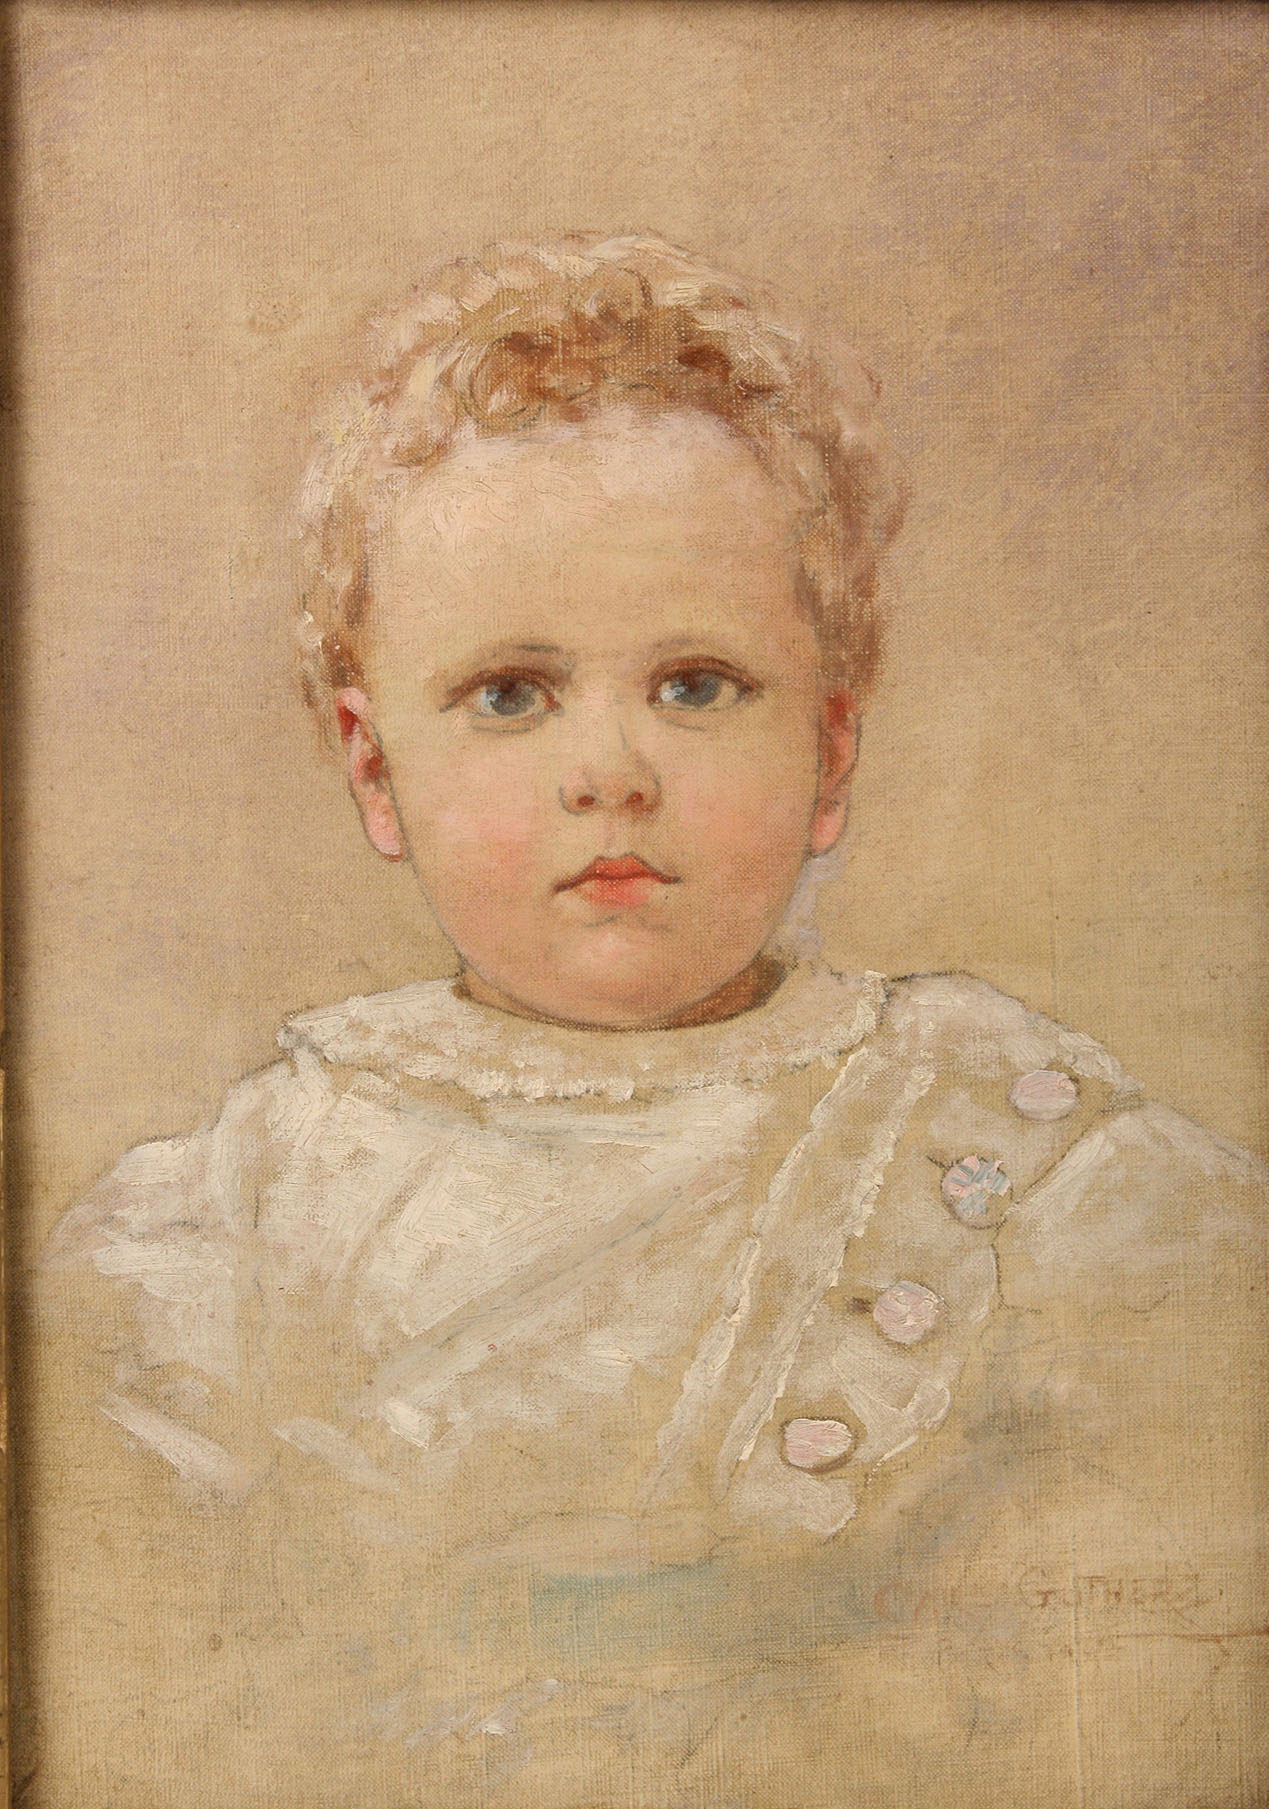 32: Carl Gutherz, Portrait of a Baby